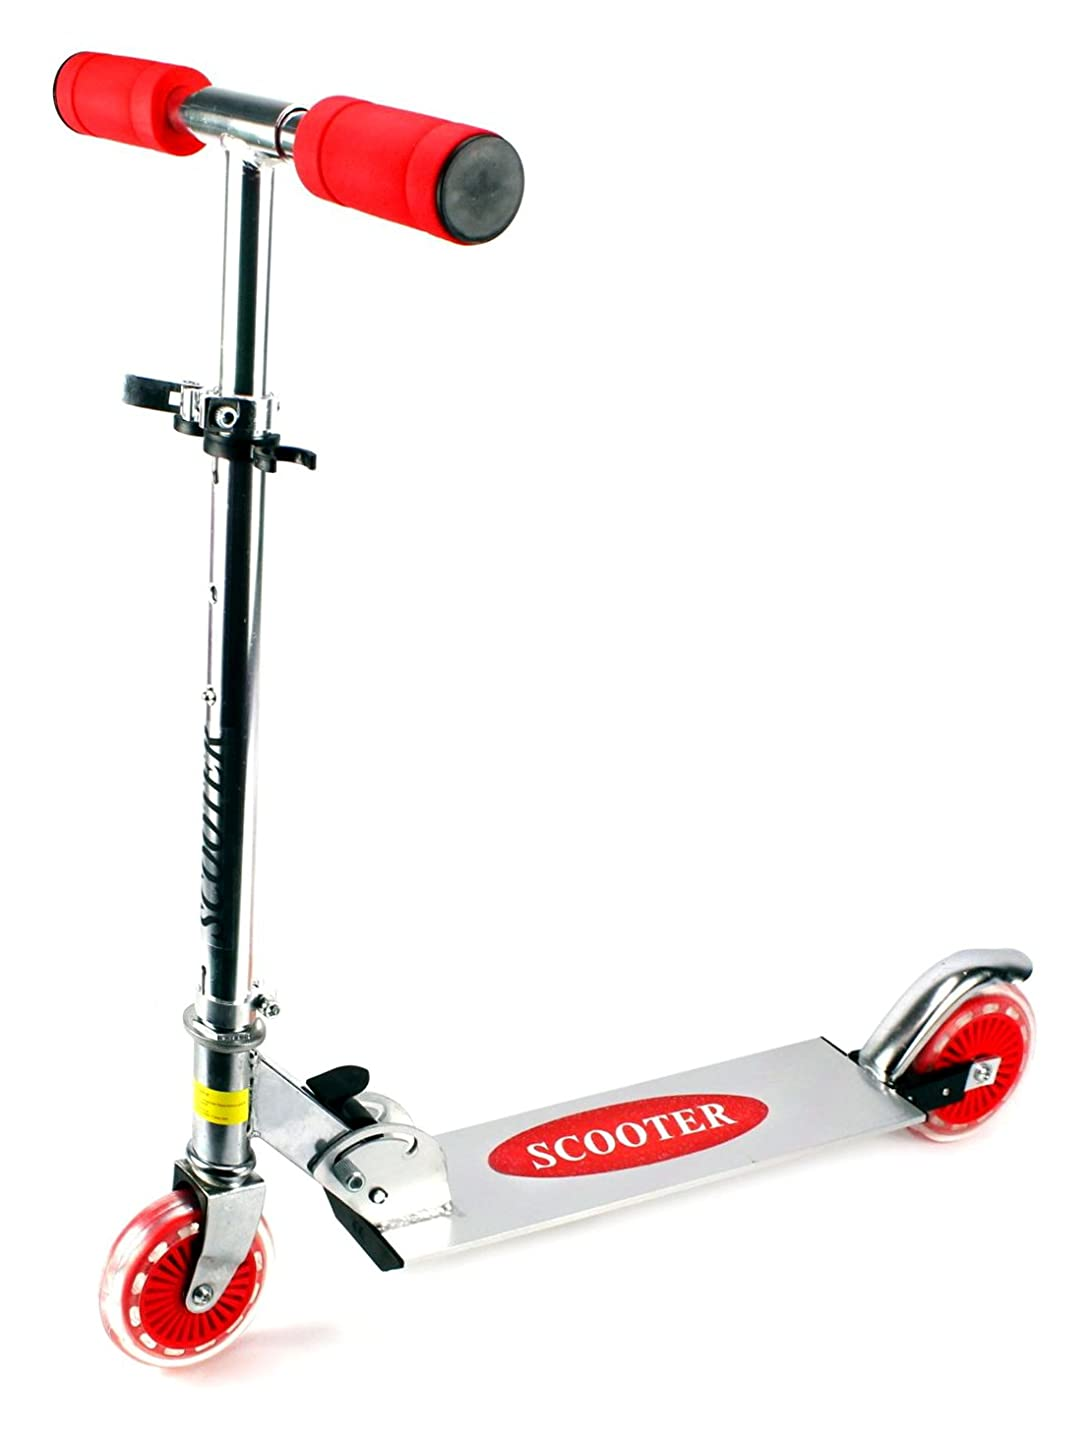 Kick Riders Aluminum Children's Two Wheeled Metal Toy Kick Scooter, Adjustable Handlebar Height (Red)